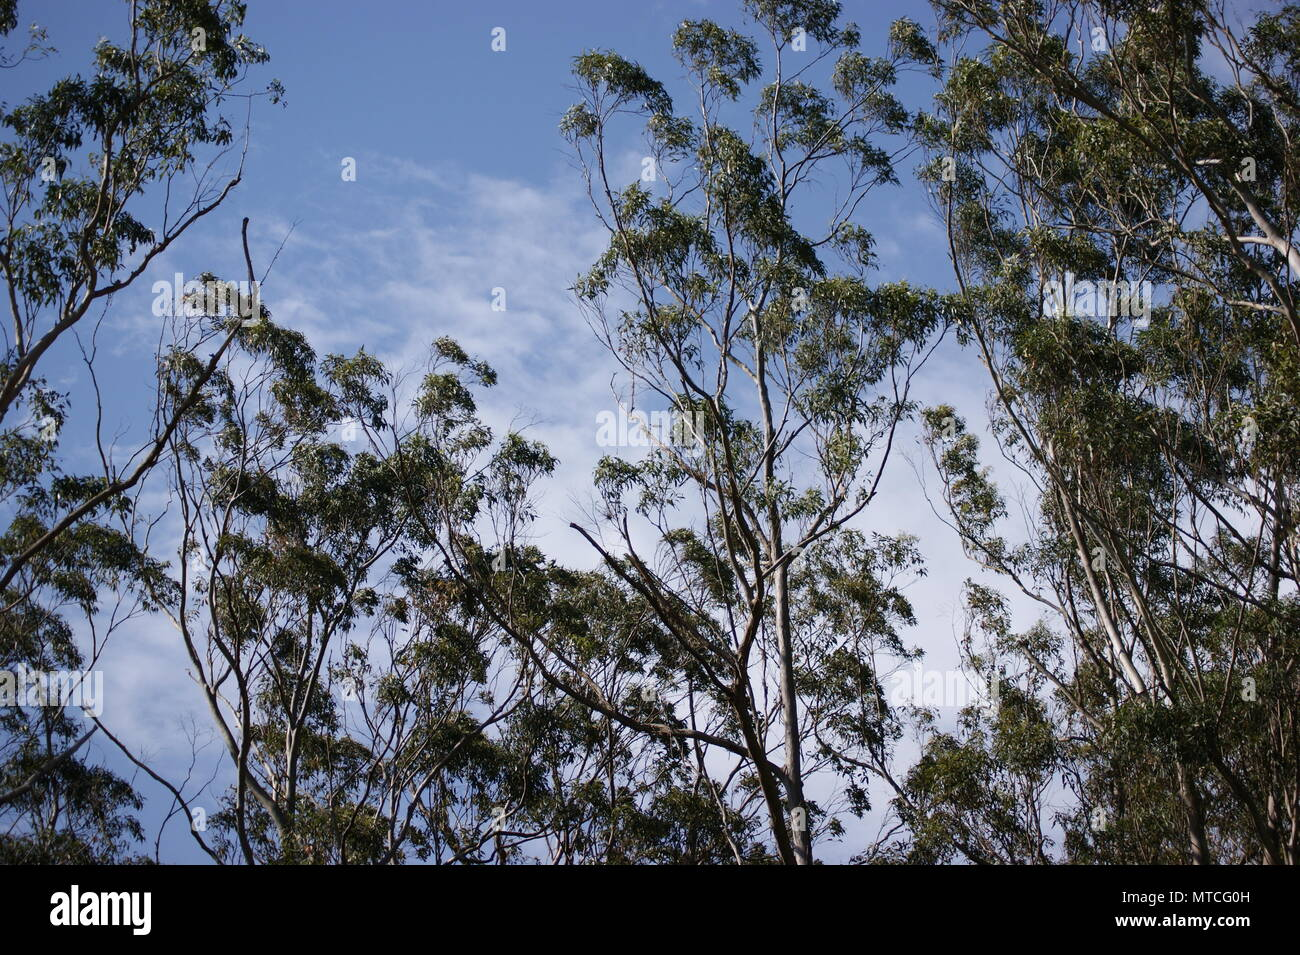 Australian trees set against partly cloudy sky - Stock Image